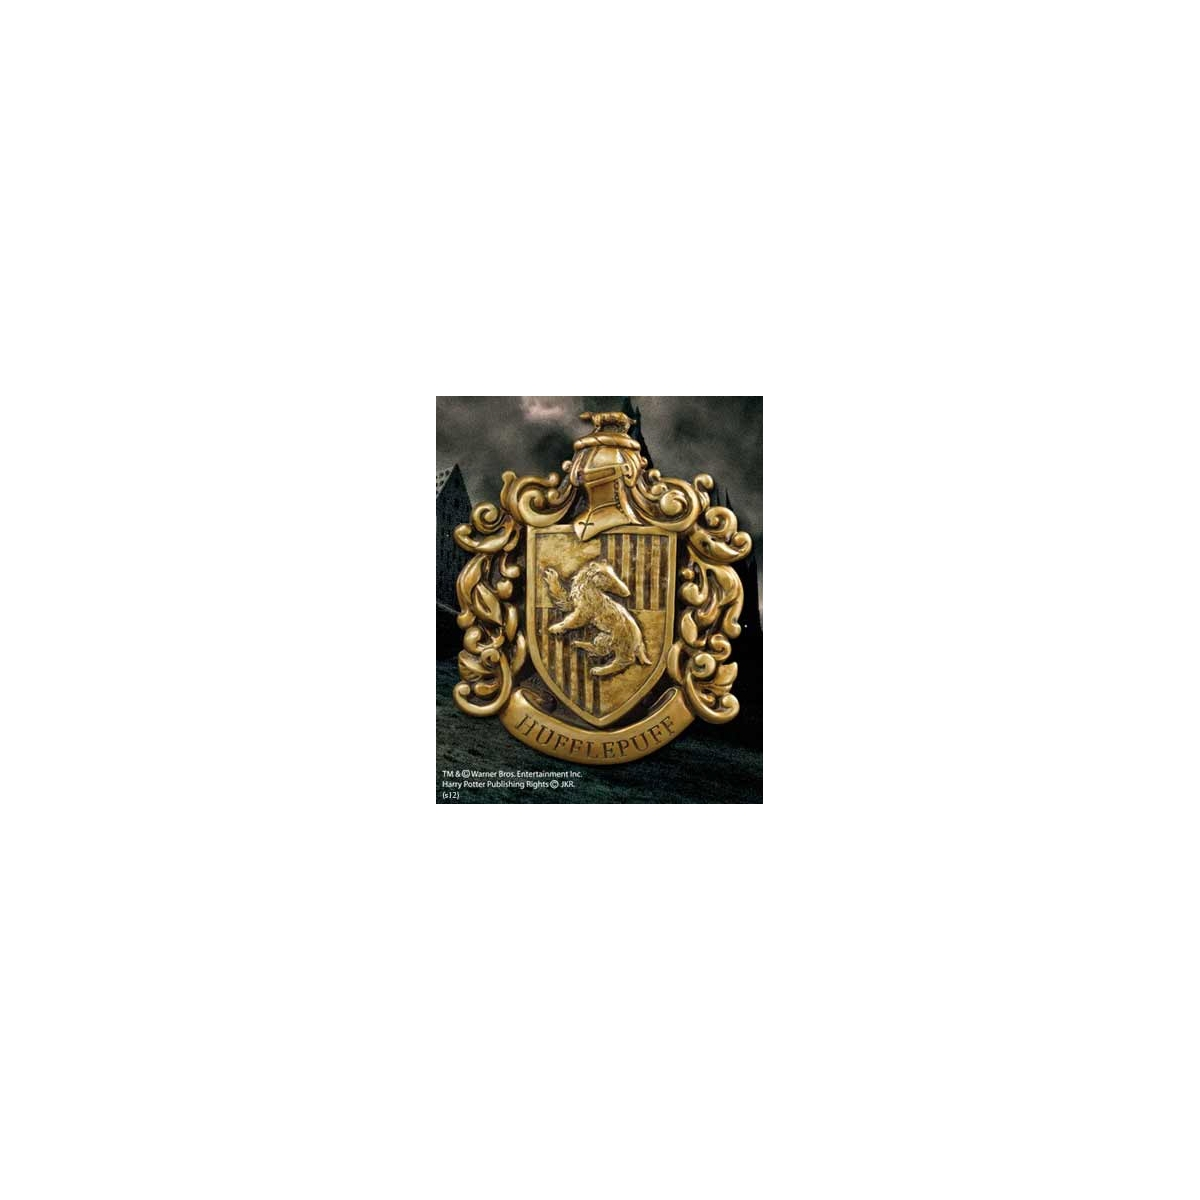 Harry potter d coration murale hufflepuff house crest 21 for Decoration murale harry potter